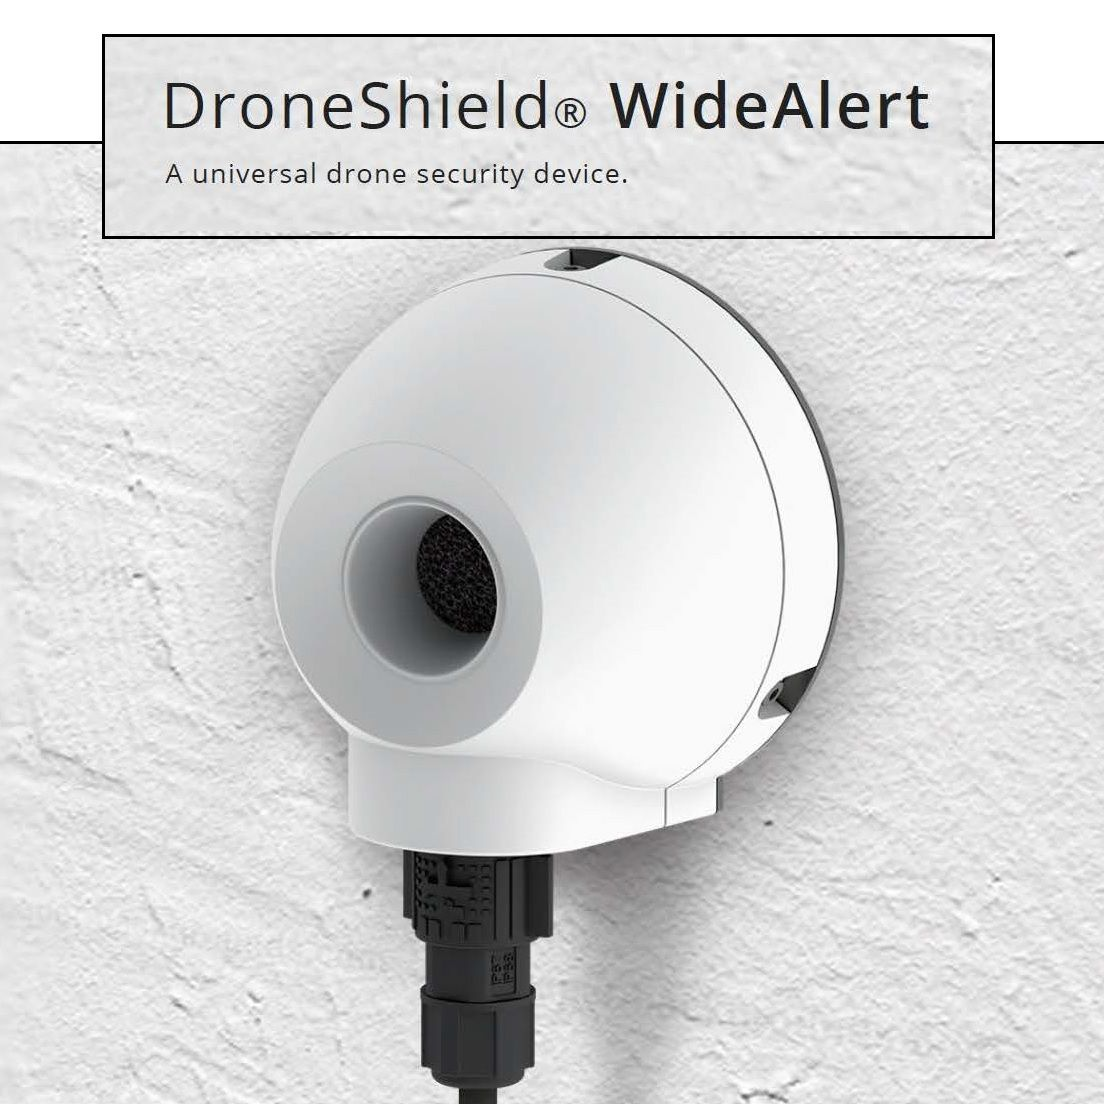 Market Update and Launch of Acoustic Drone Detection Product WideAlert